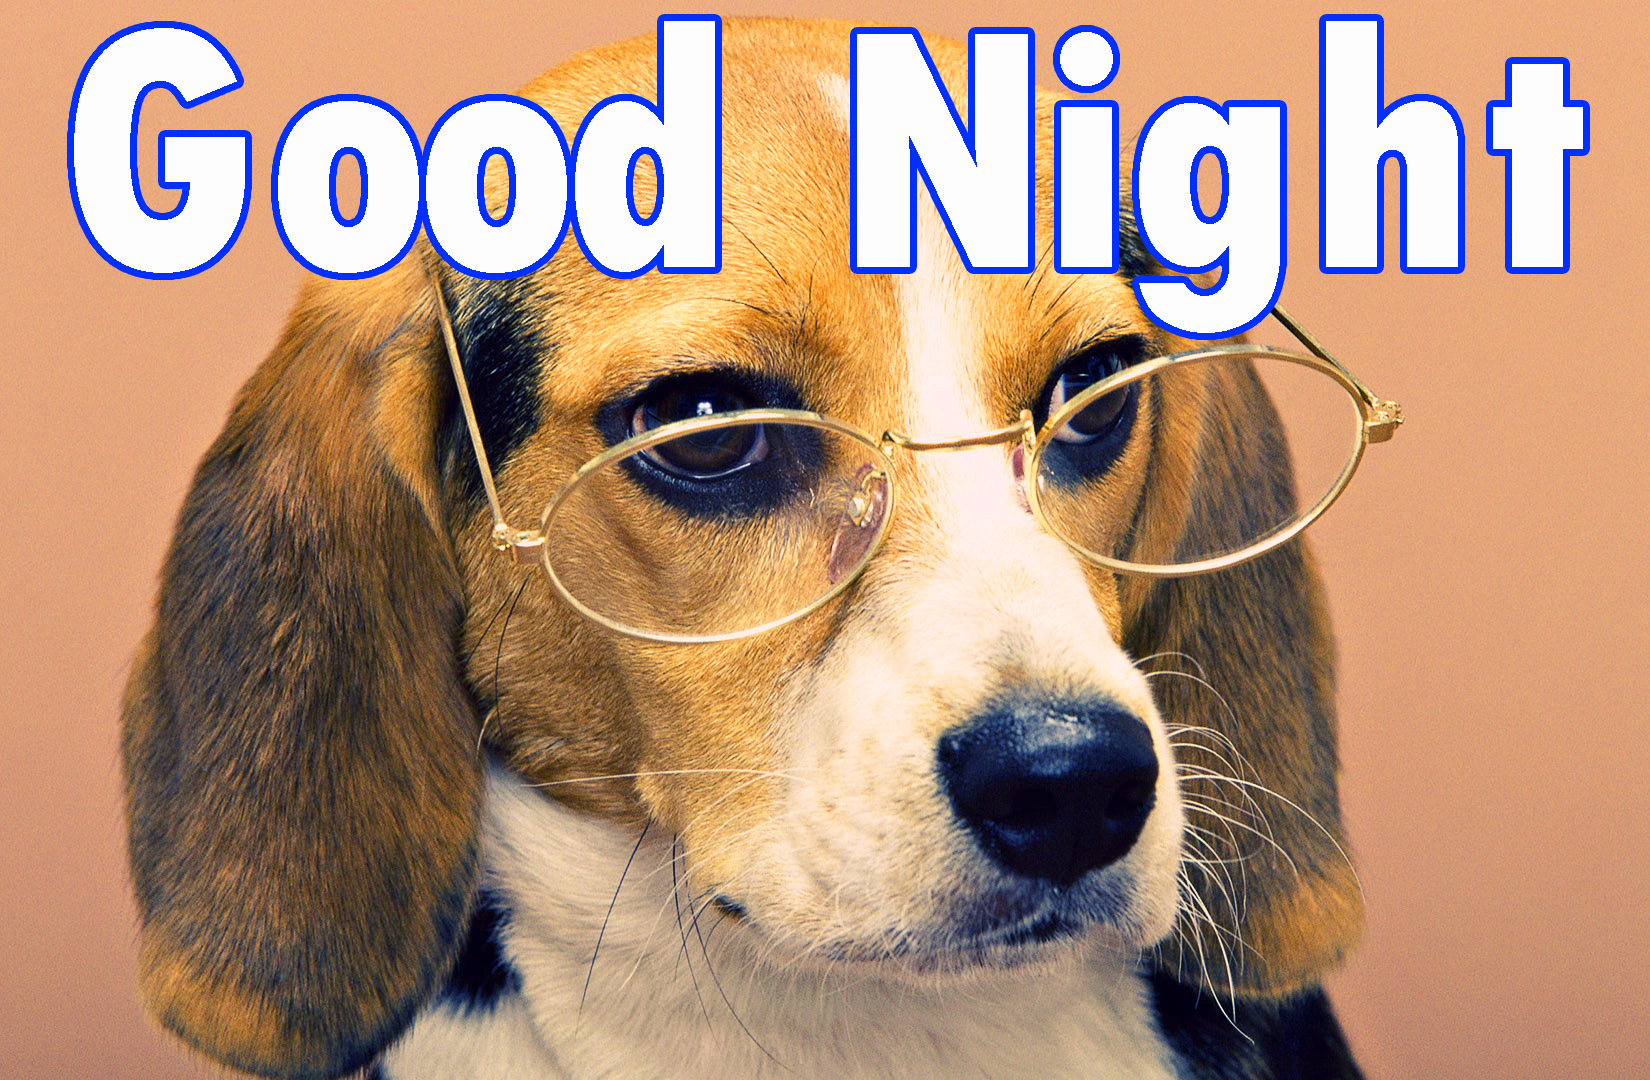 Funny Good night Images Wallpaper photo Pics Pictures Free Download